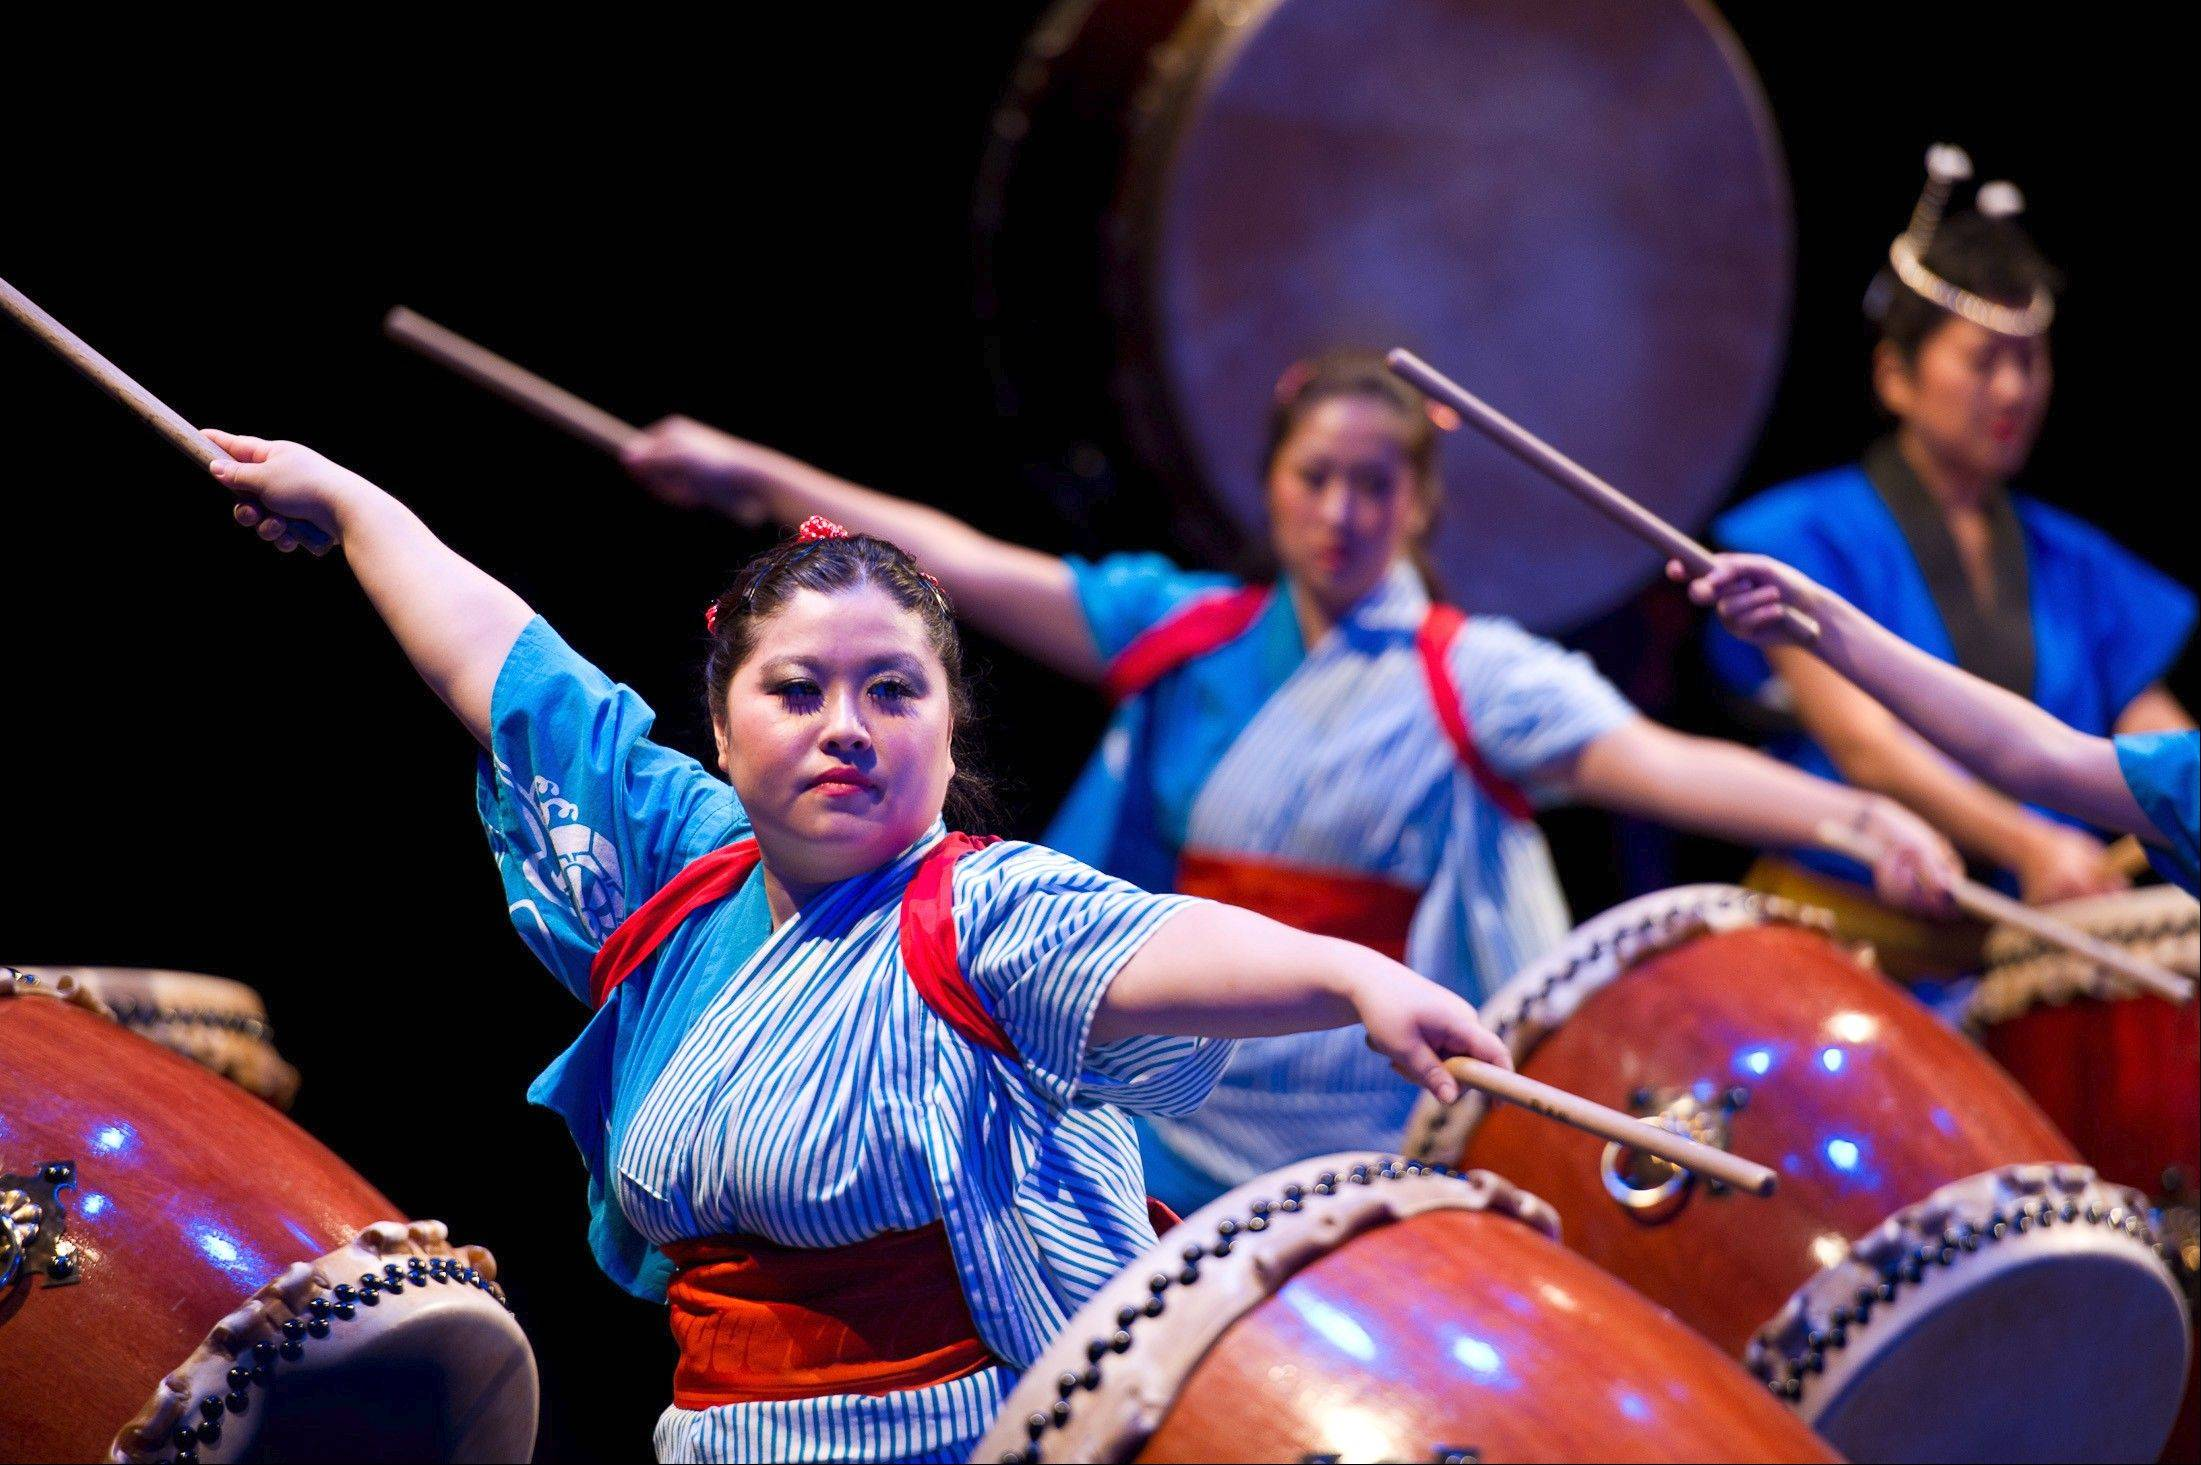 Thunderous drumming, jazz improvisations and dance are all part of the Taiko Legacy performances at the Museum of Contemporary Art in Chicago.